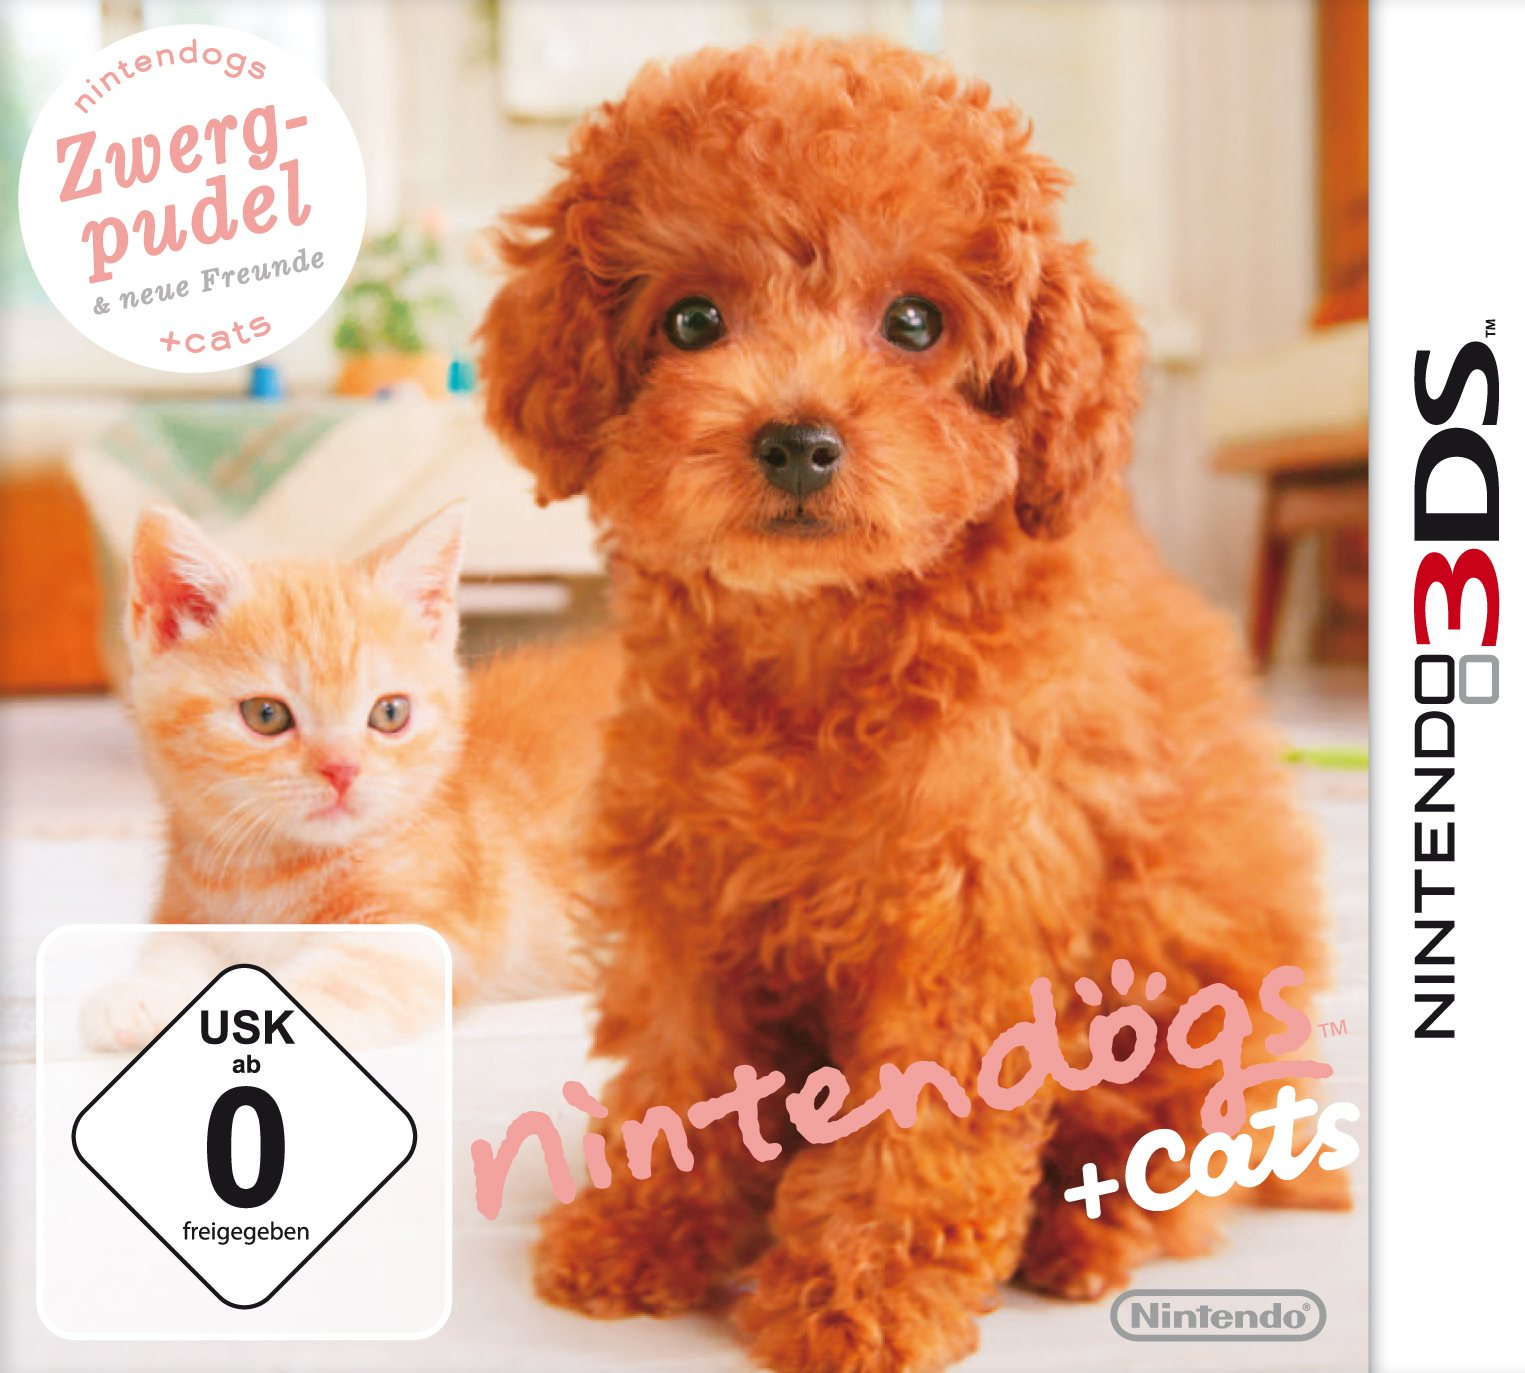 Nintendogs + Cats - Zwerg-Pudel